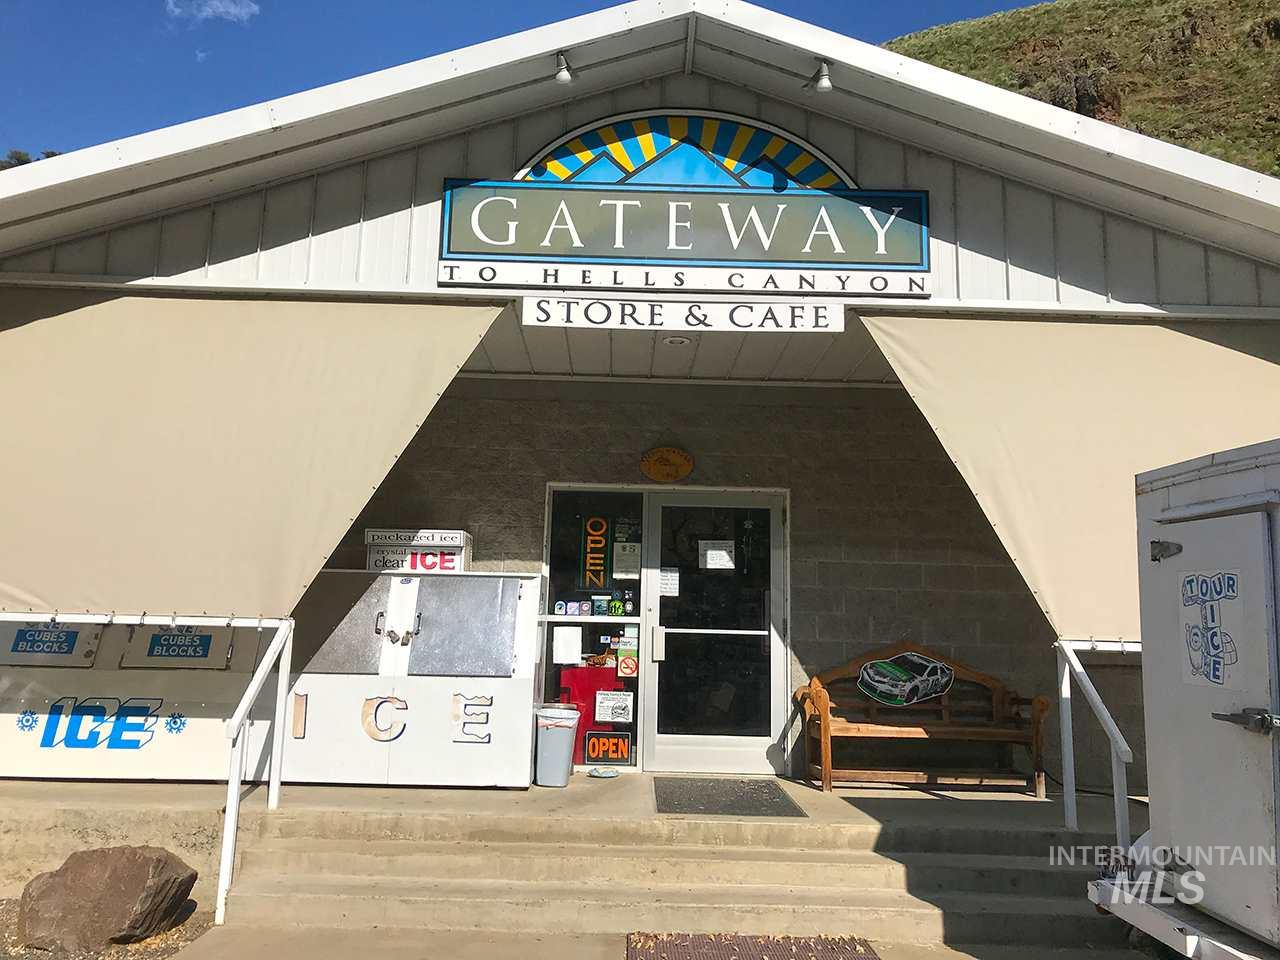 4220 HWY 71, Cambridge, Idaho 83610, Business/Commercial For Sale, Price $599,900, 98730697